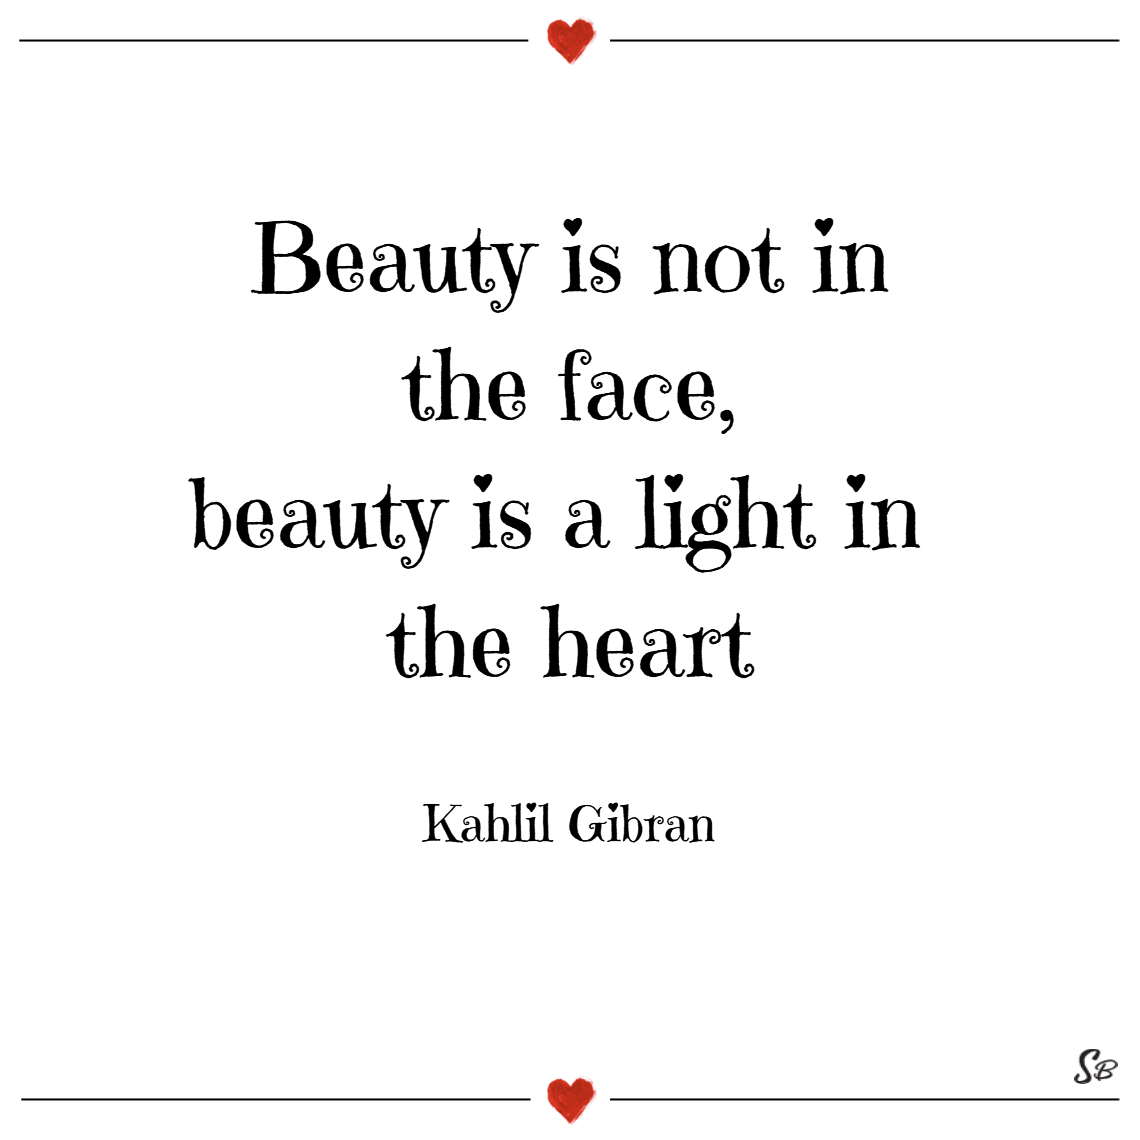 Beauty is not in the face, beauty is a light in the heart. – kahlil gibran